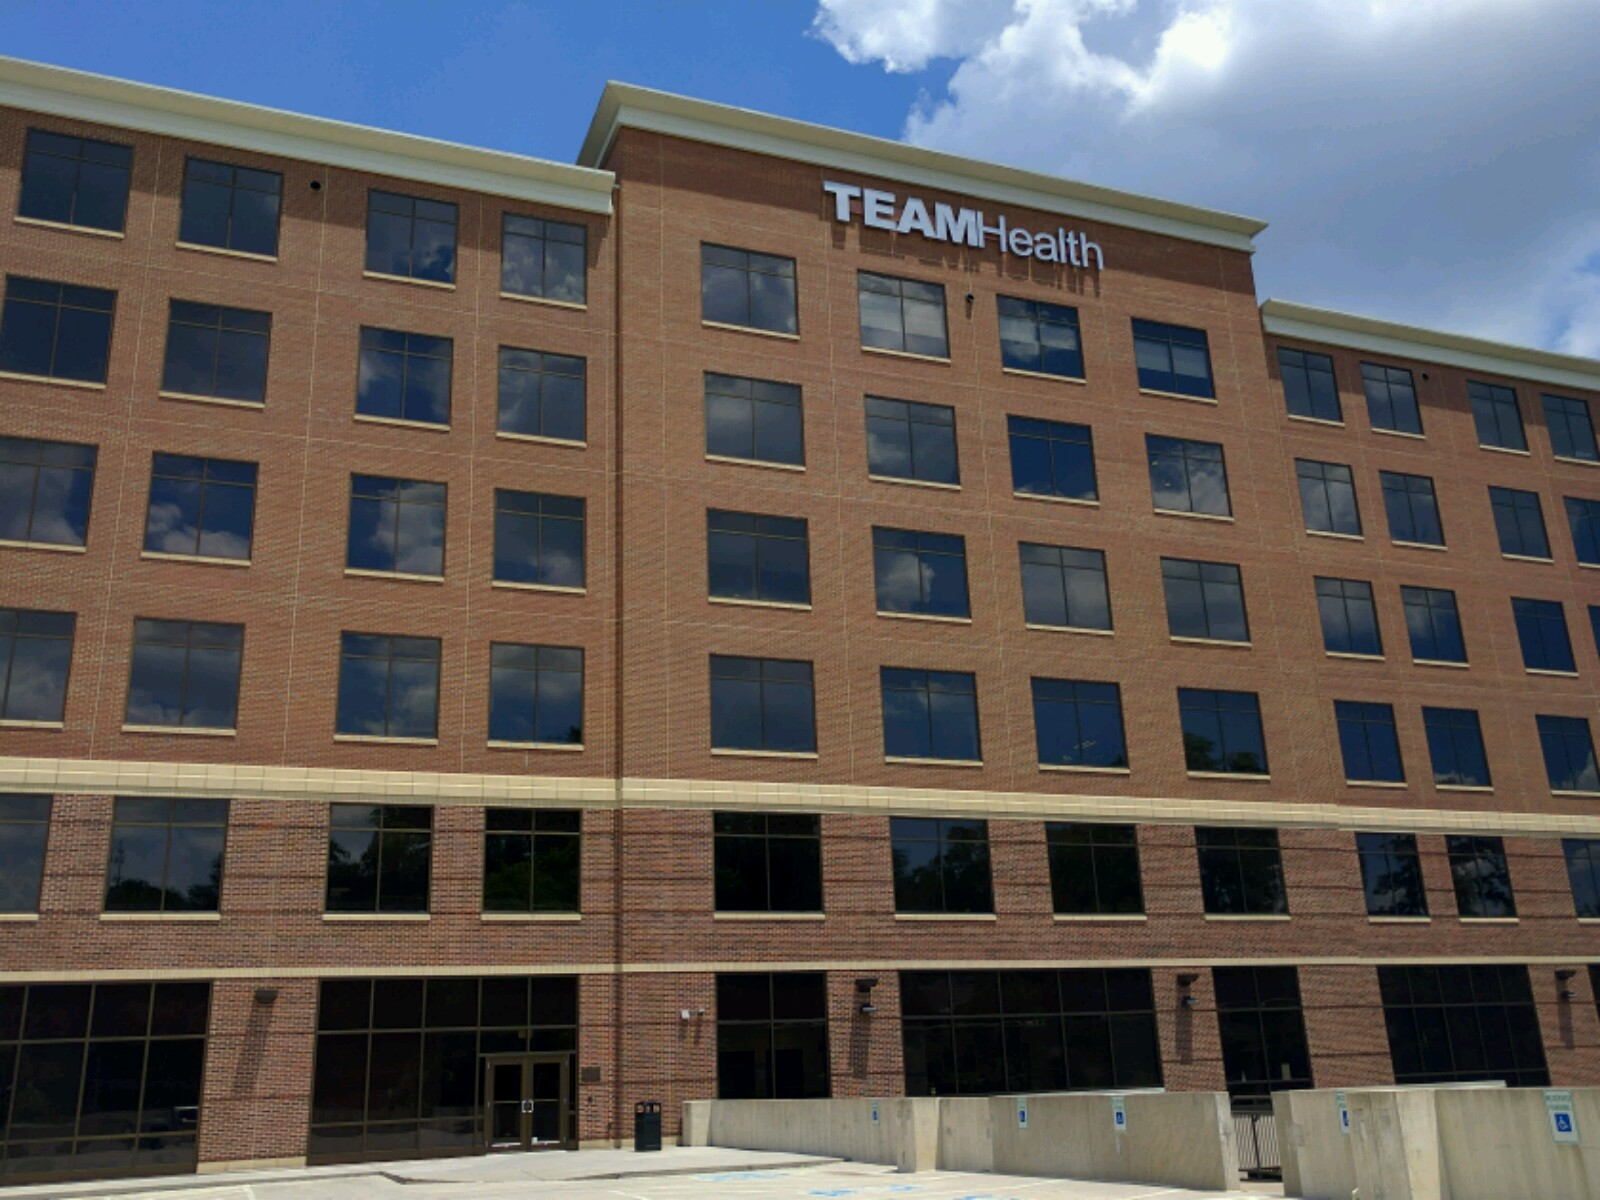 Team Health's corporate headquarters in Knoxville, Tennessee.